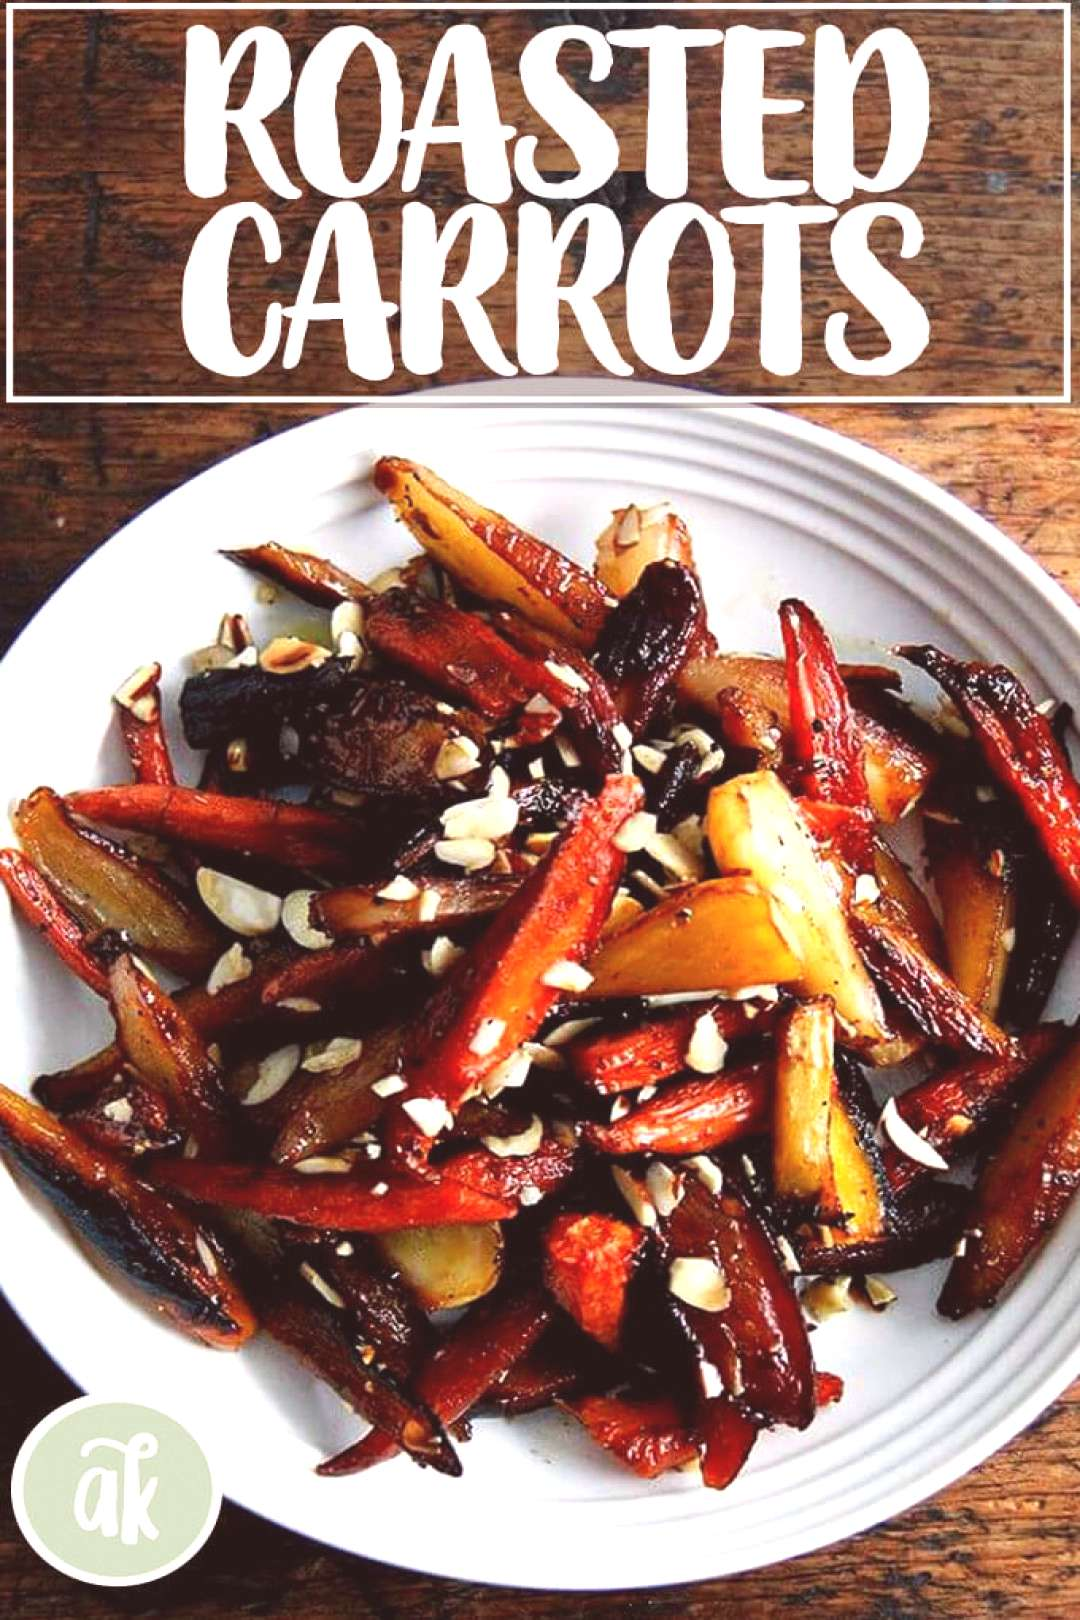 These twice-roasted carrots bathe in vinegar after their first pass in the oven, then get dressed w